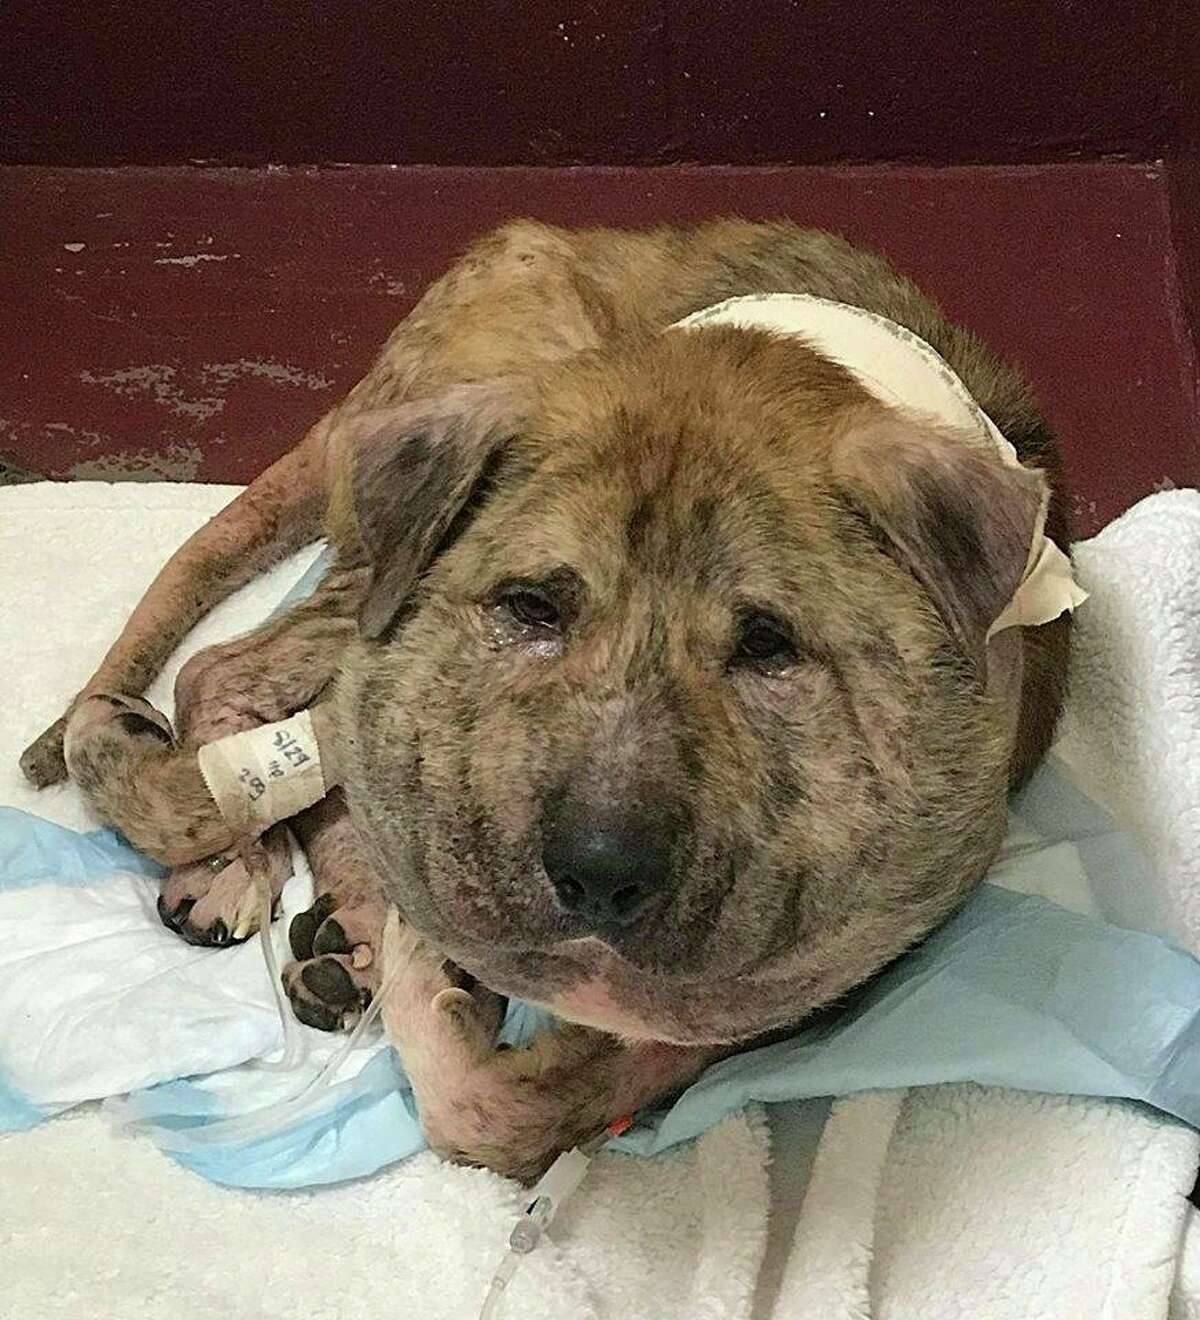 WARNING GRAPHIC PHOTOS: Houston dog suffering from neck wound saved by rescue group An abandoned dog named Gus is currently being cared for by veterinarians after he was found roaming a Houston street with a shoestring embedded around his neck and suffering from what appeared to be a severe infection on his neck. The Houston K911 Rescue group later took him to an emergency vet clinic. >>>See more photos of Gus as shared by an animal rescue group this week...